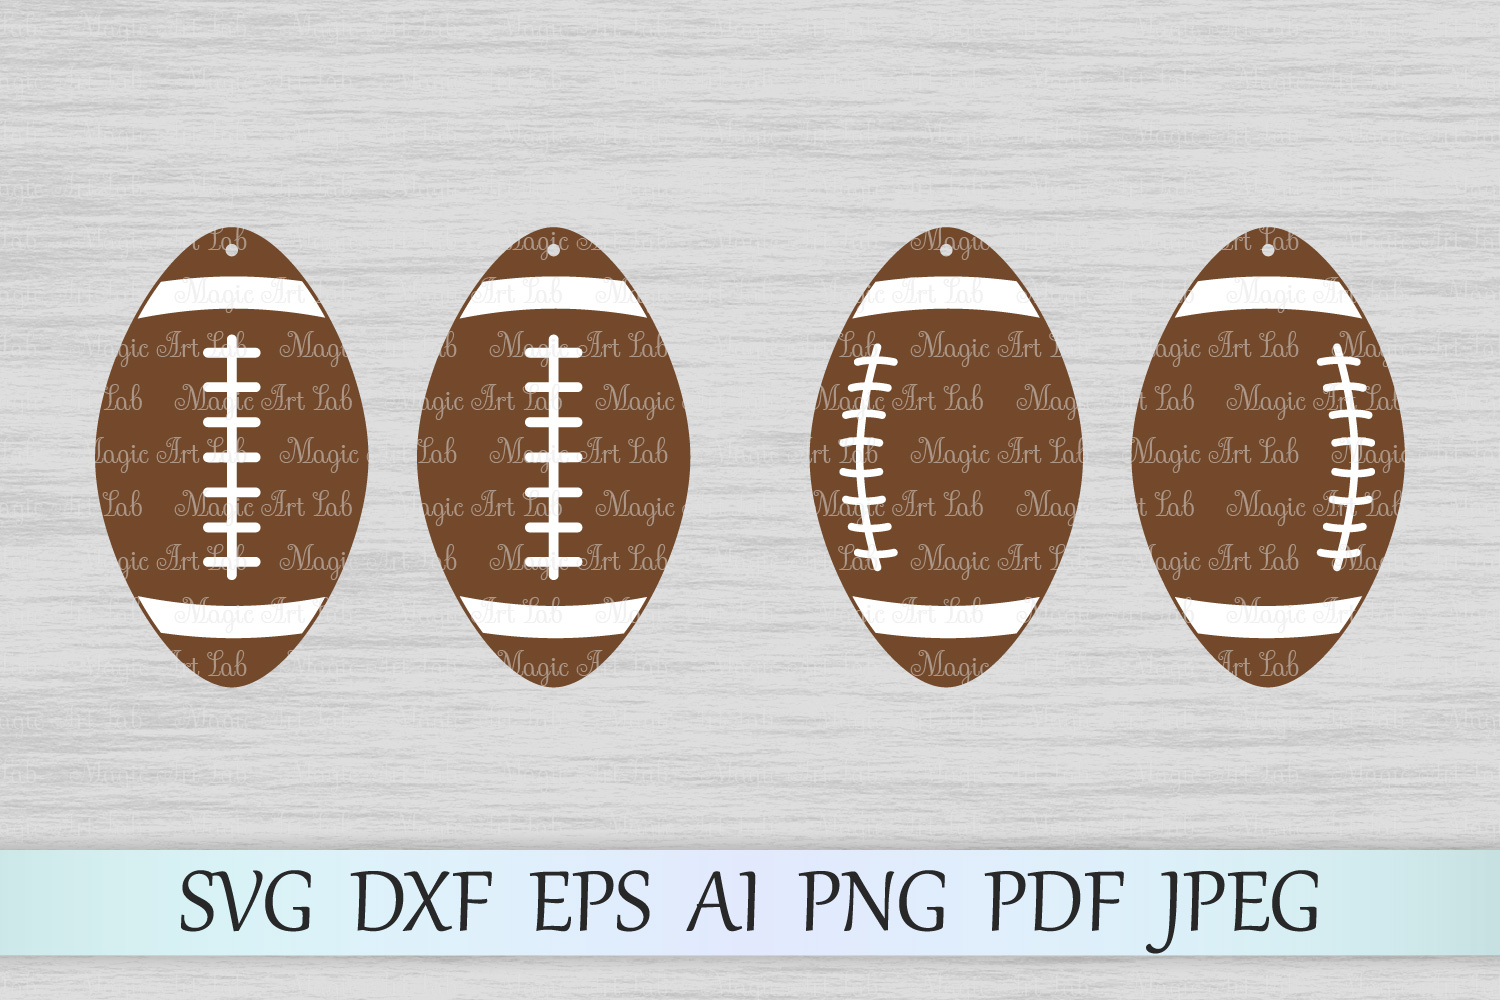 Download Free Football Earrings Graphic By Magicartlab Creative Fabrica for Cricut Explore, Silhouette and other cutting machines.